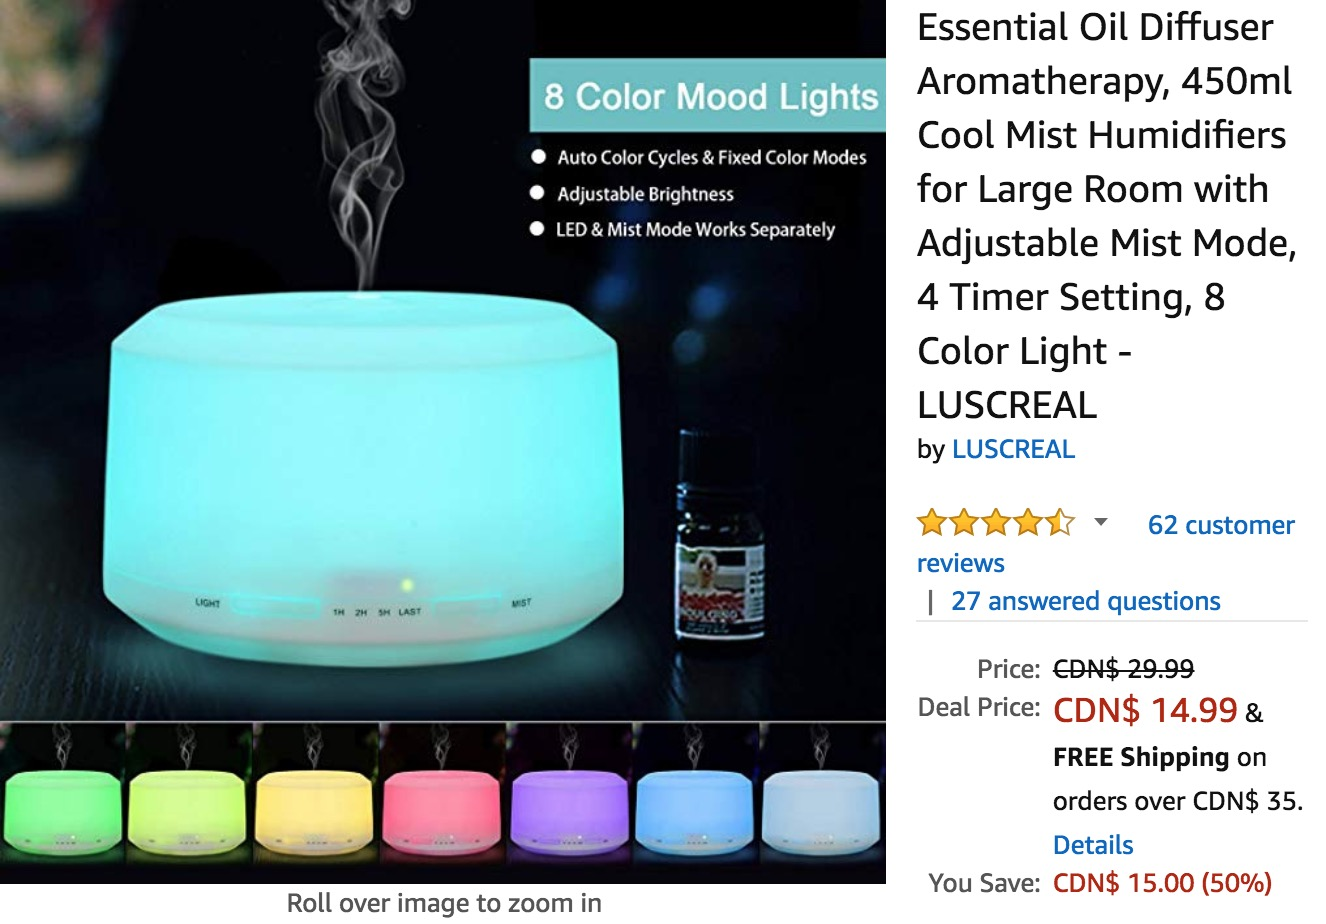 Amazon Canada Deals: Save 50% on Essential Oil Diffuser